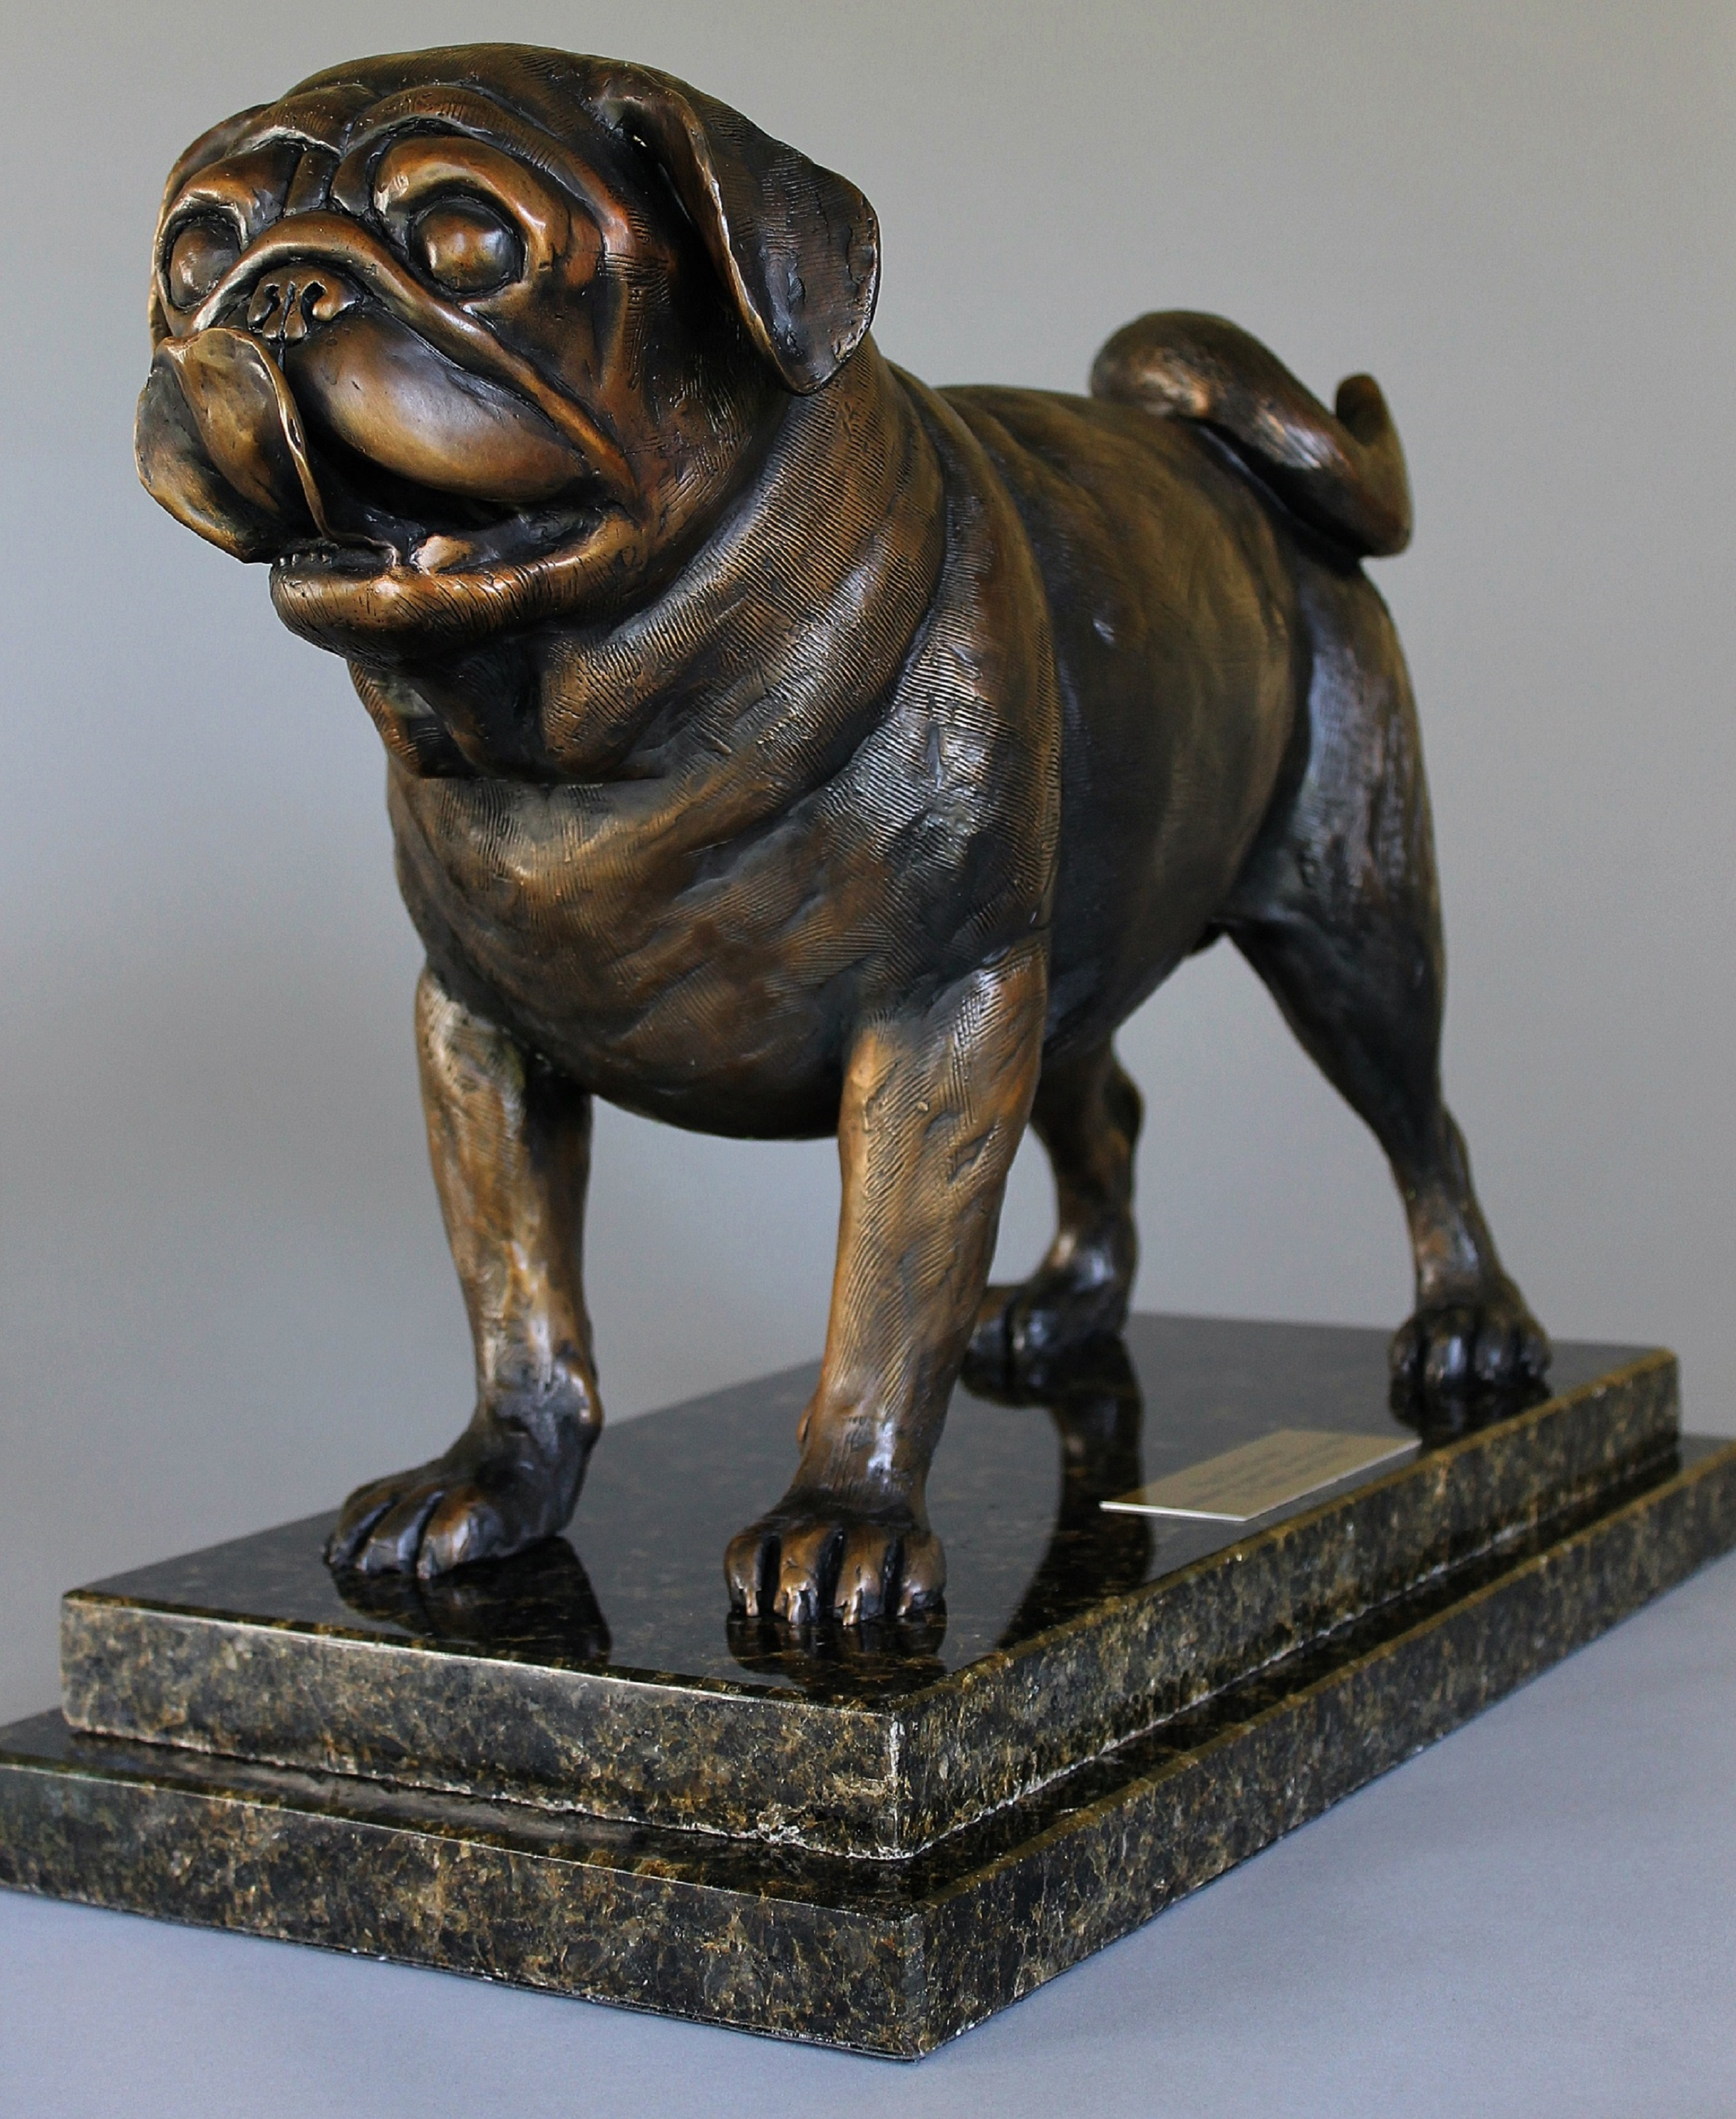 Life Size Pug artwork by Todd Lane - art listed for sale on Artplode